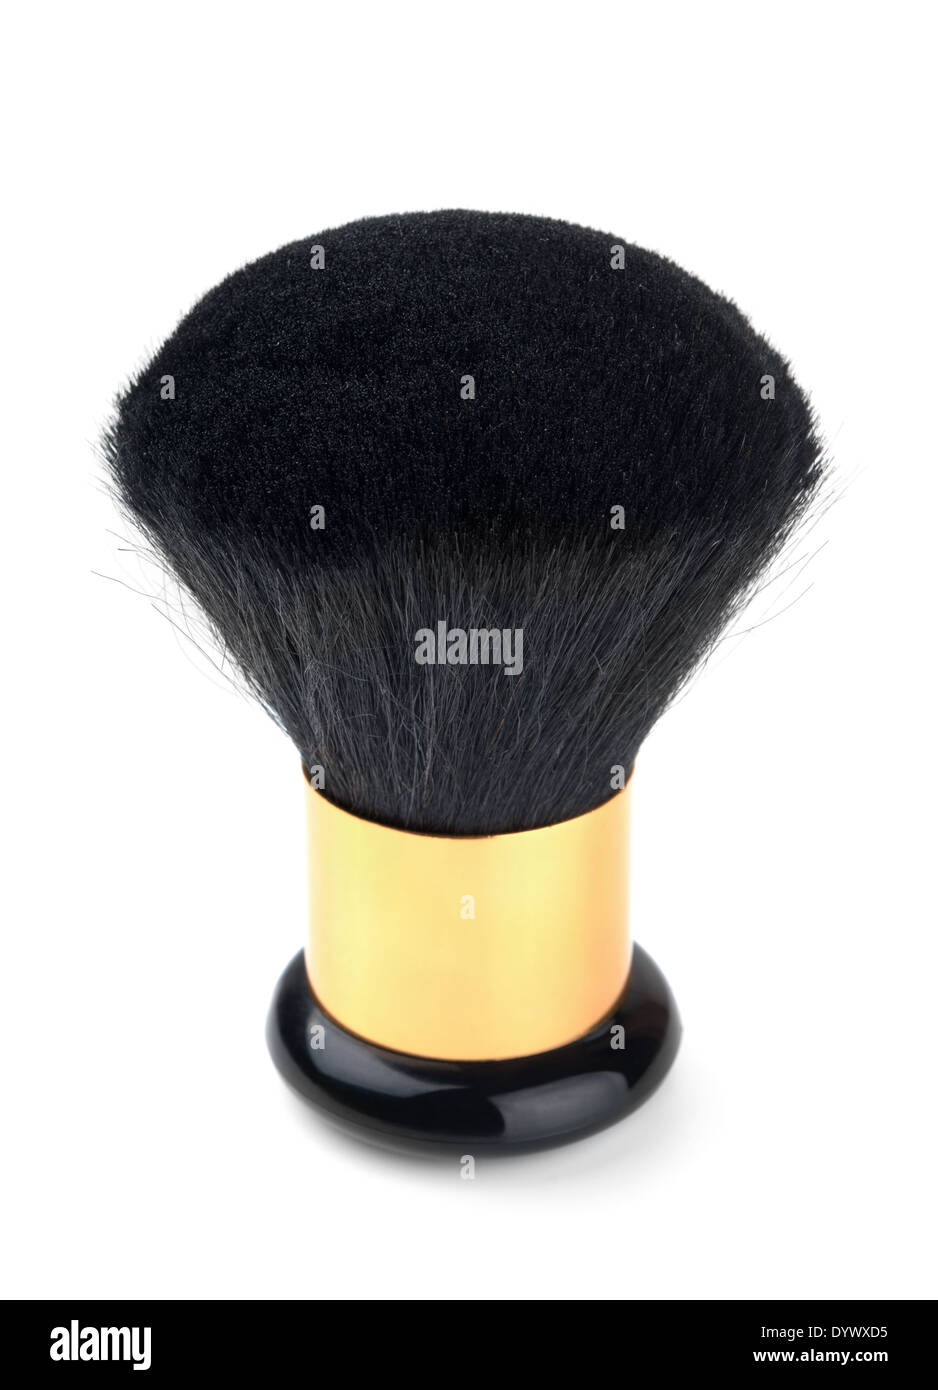 Powder brush on a white background - Stock Image